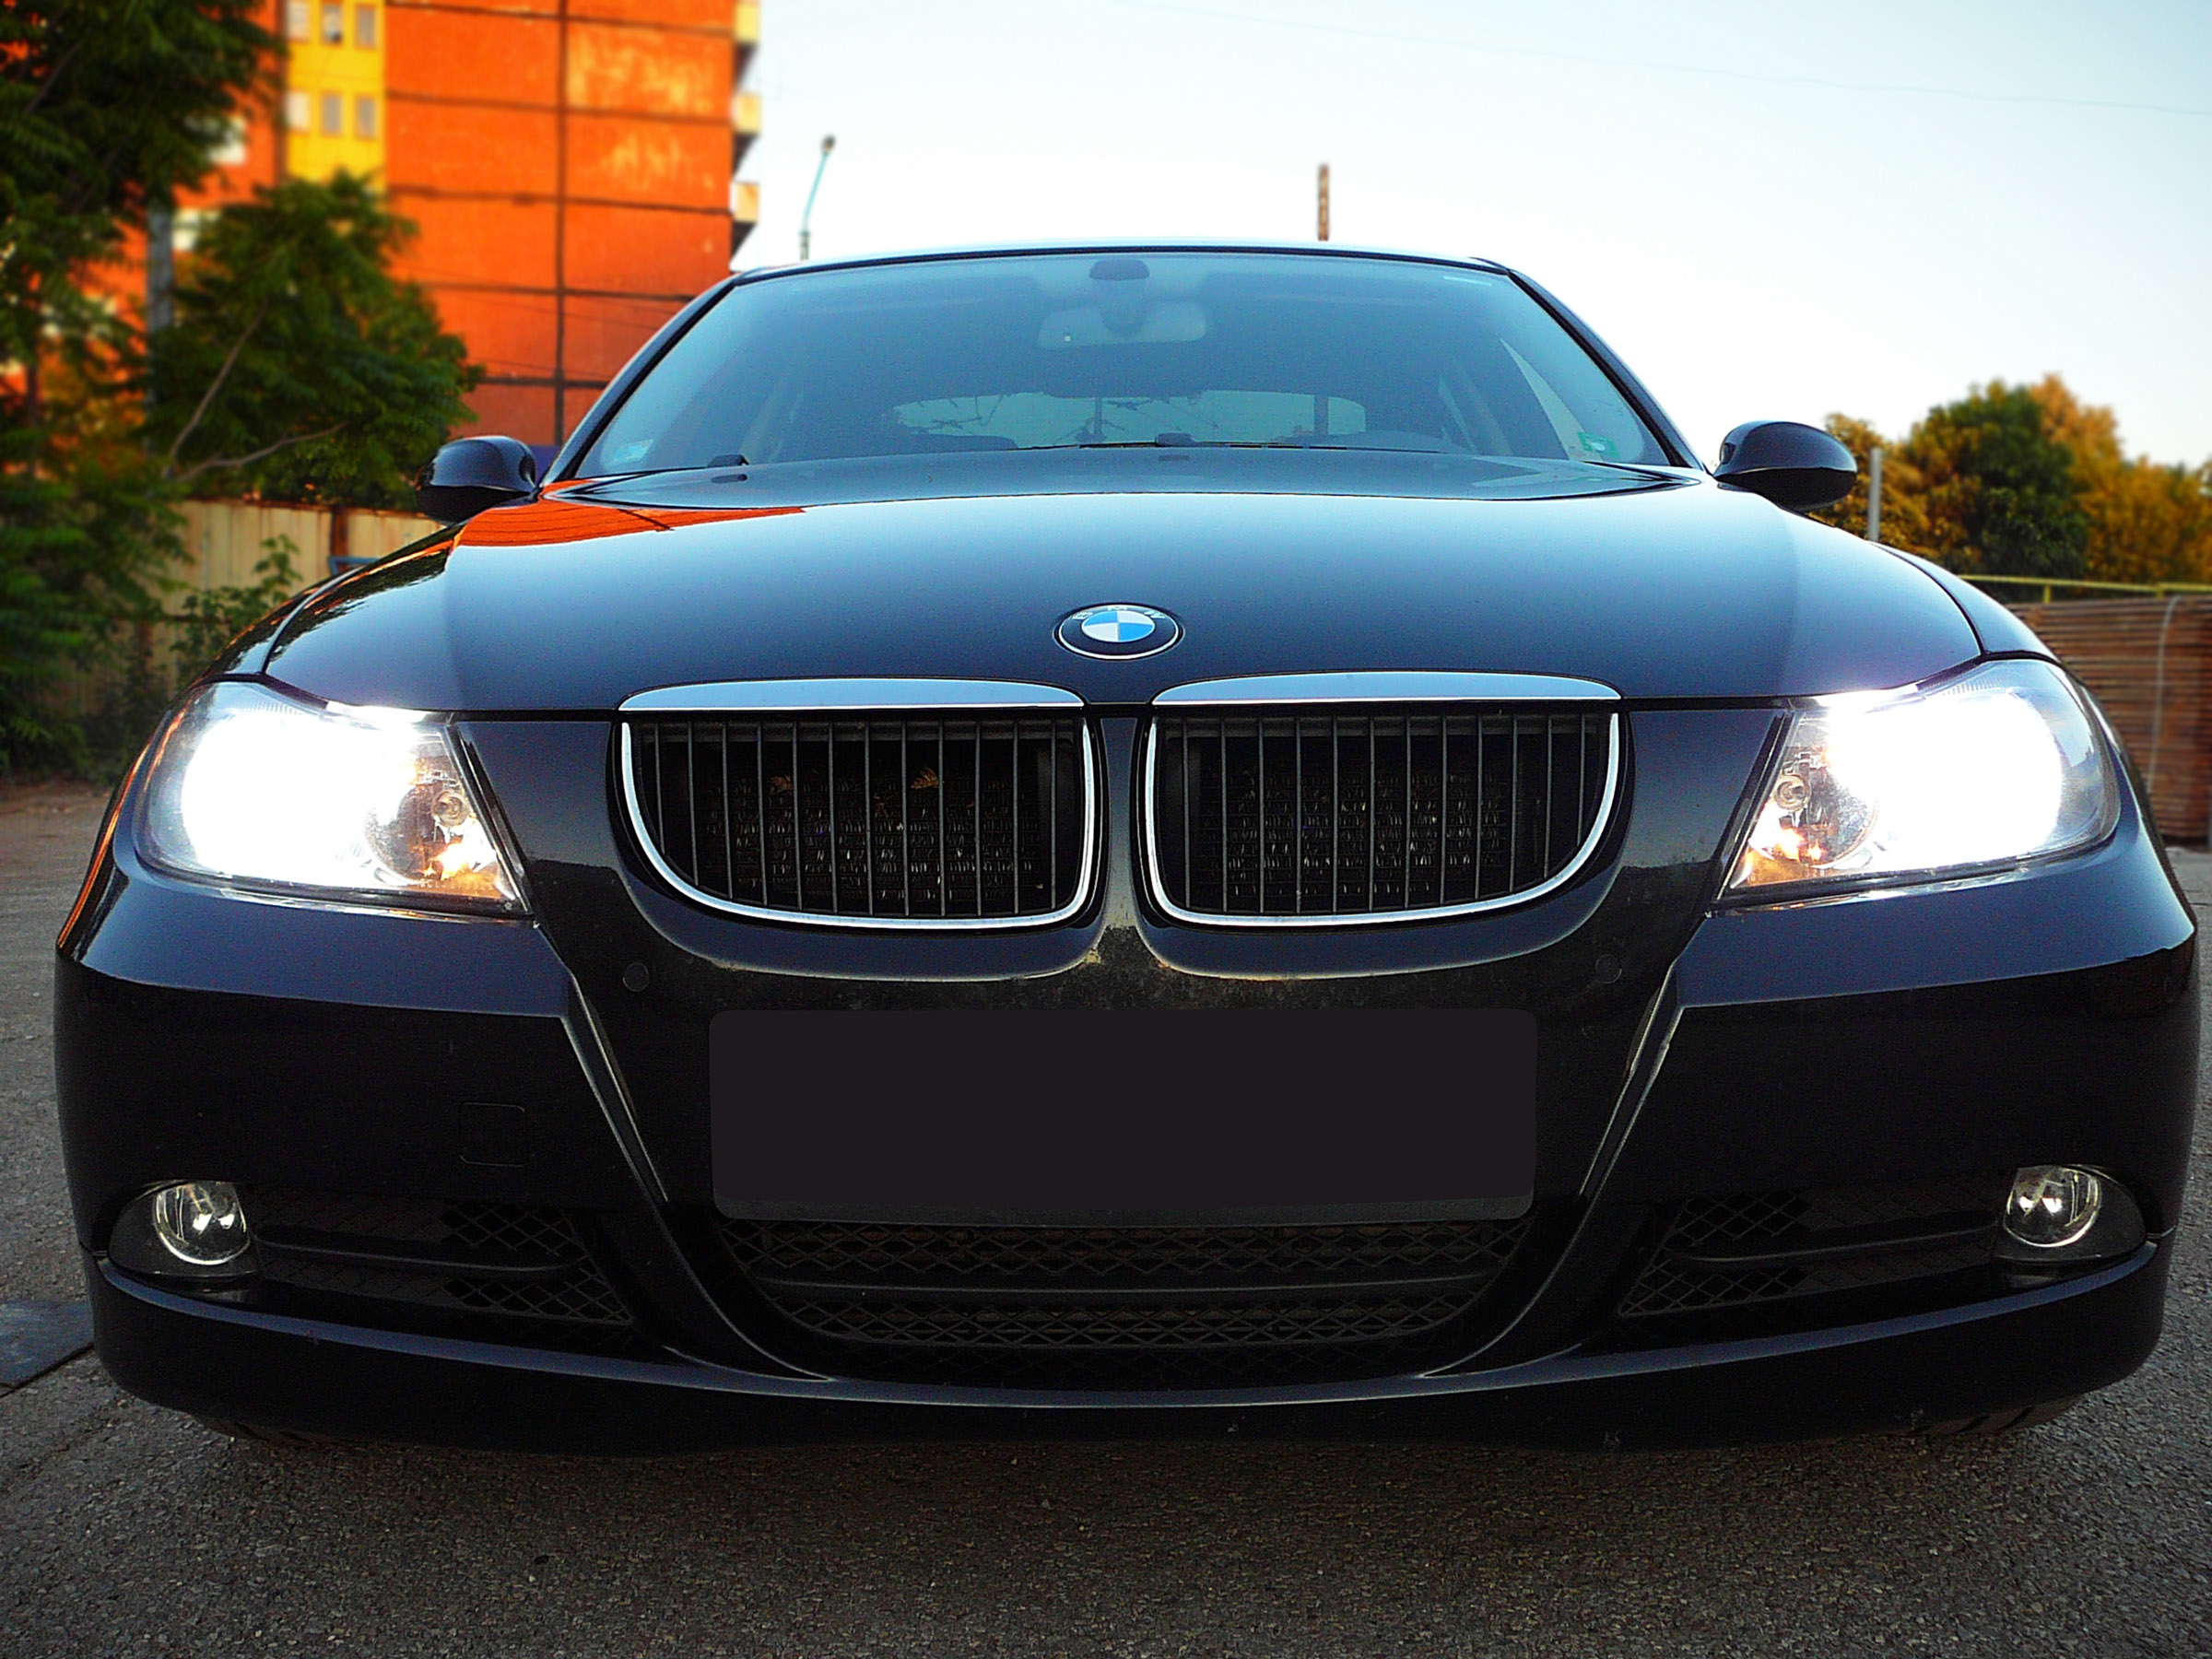 bmw 320d 2007 review amazing pictures and images look at the car. Black Bedroom Furniture Sets. Home Design Ideas